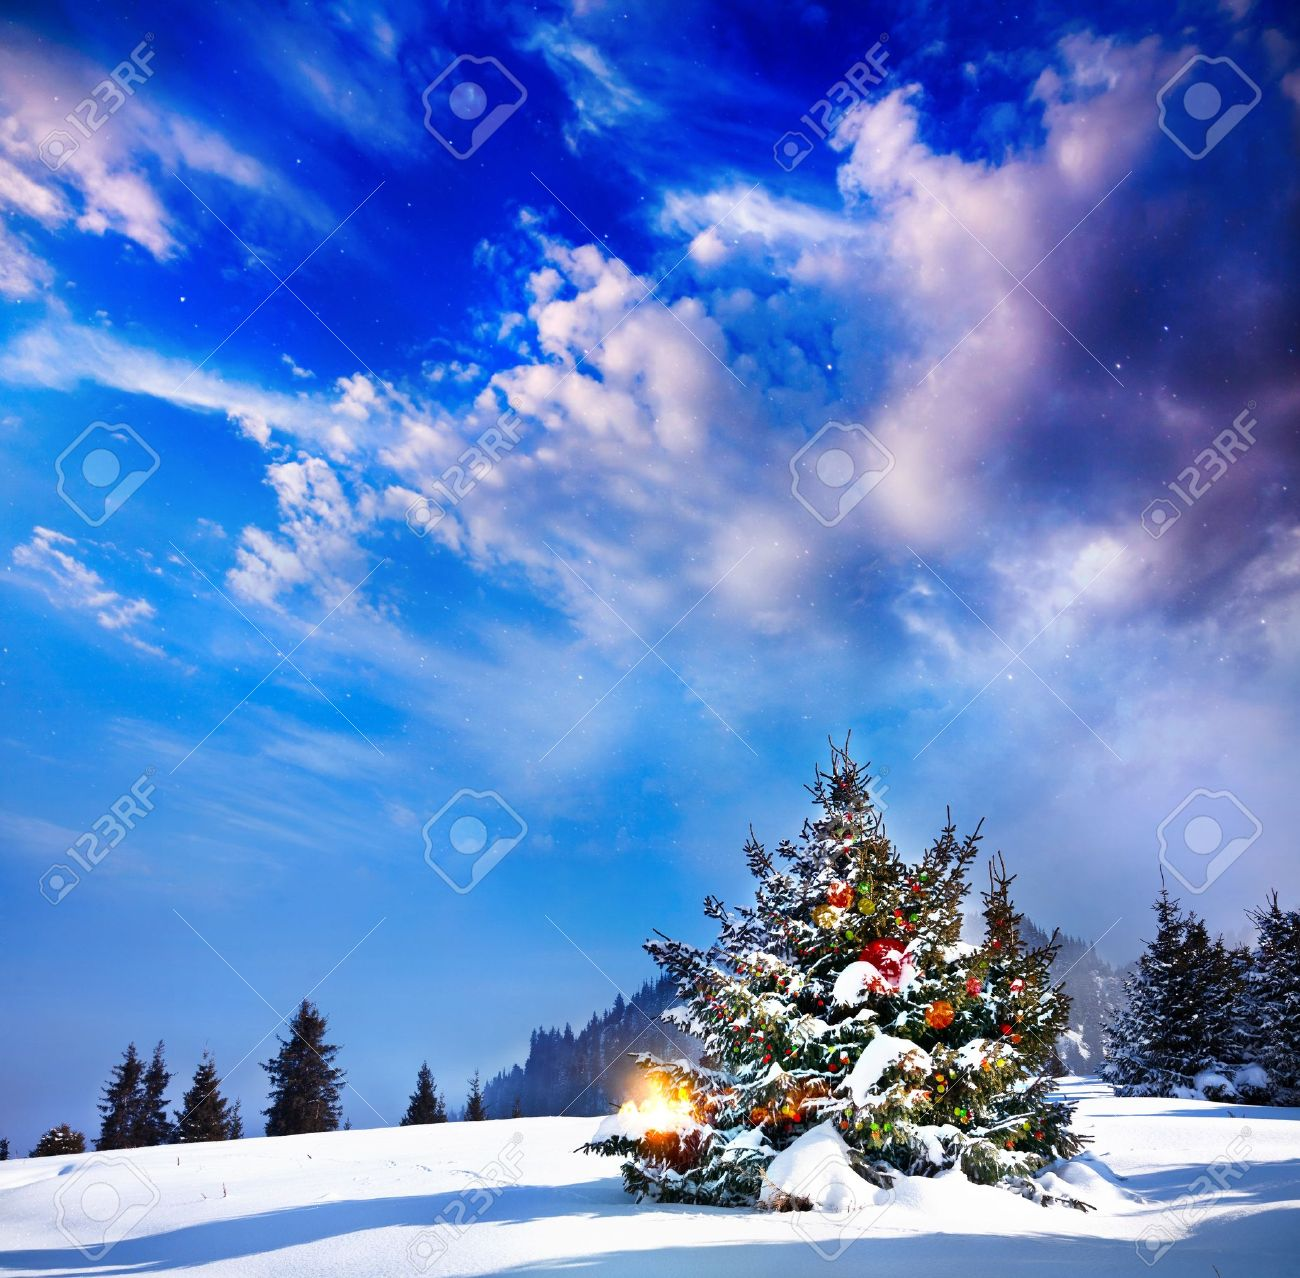 Mountain Christmas Tree.Christmas Tree With Lights In Mountain Snow Forest At Dramatic